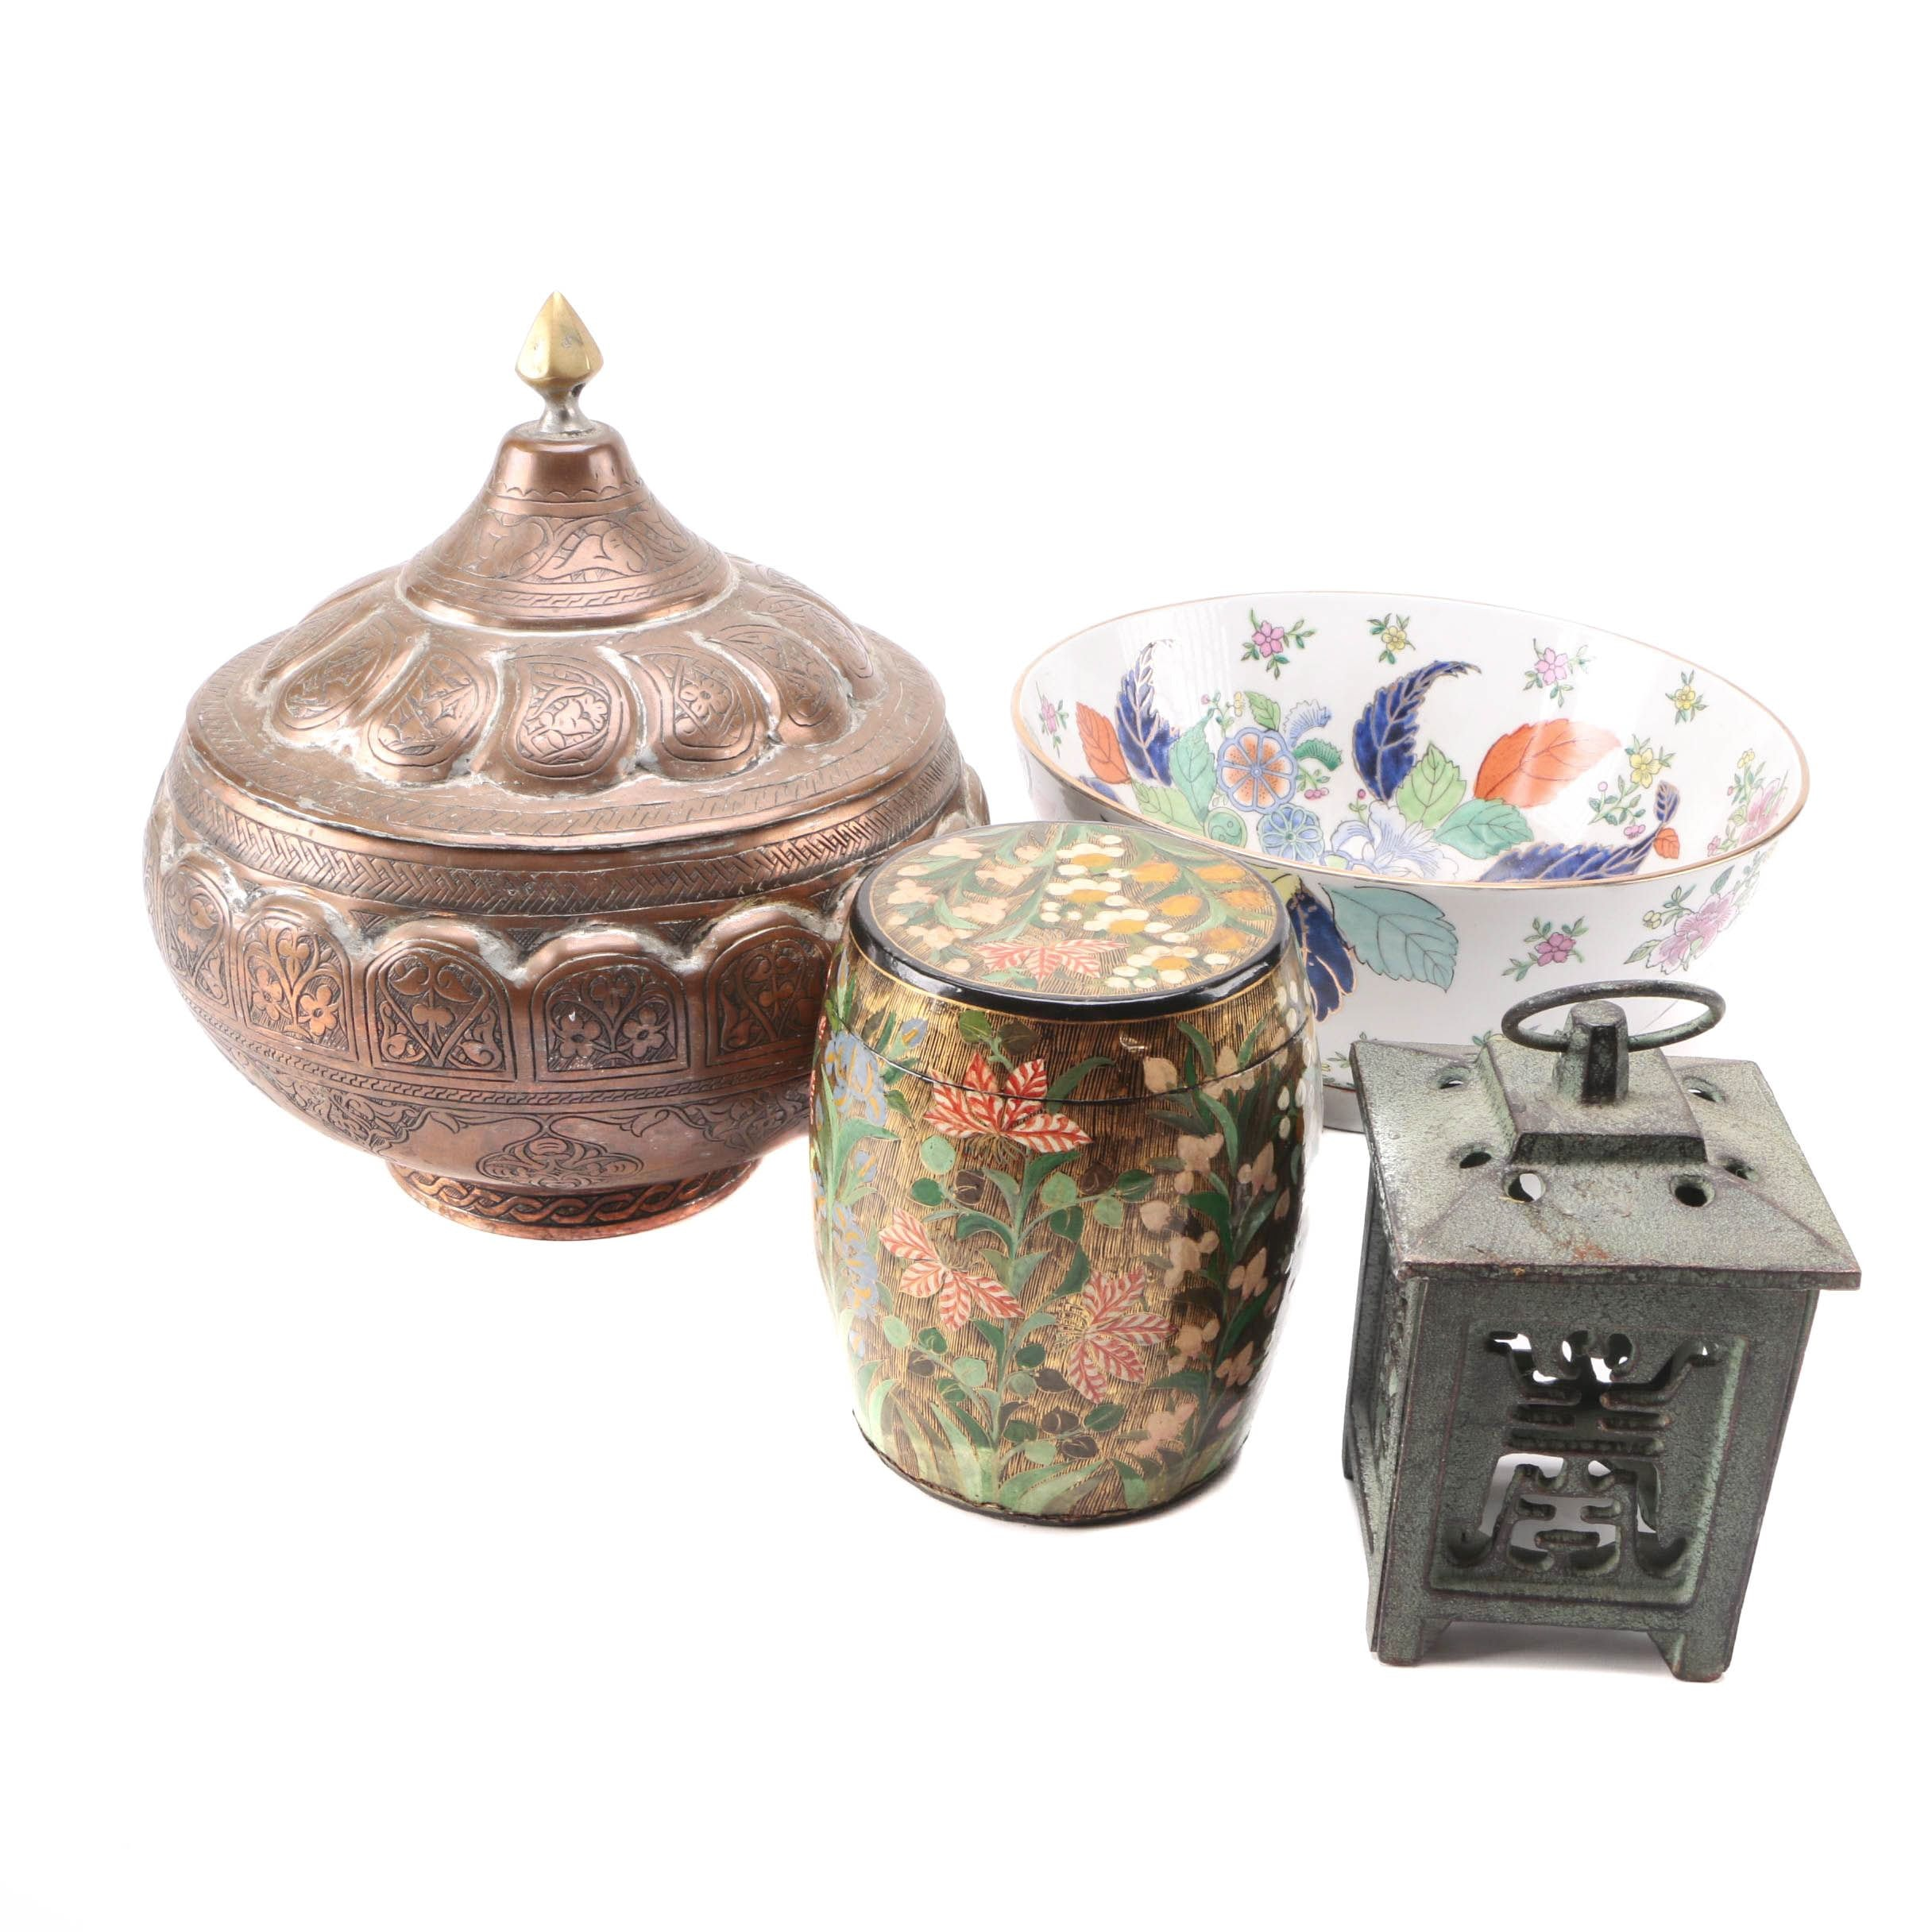 Asian Inspired Ceramic and Metal Décor